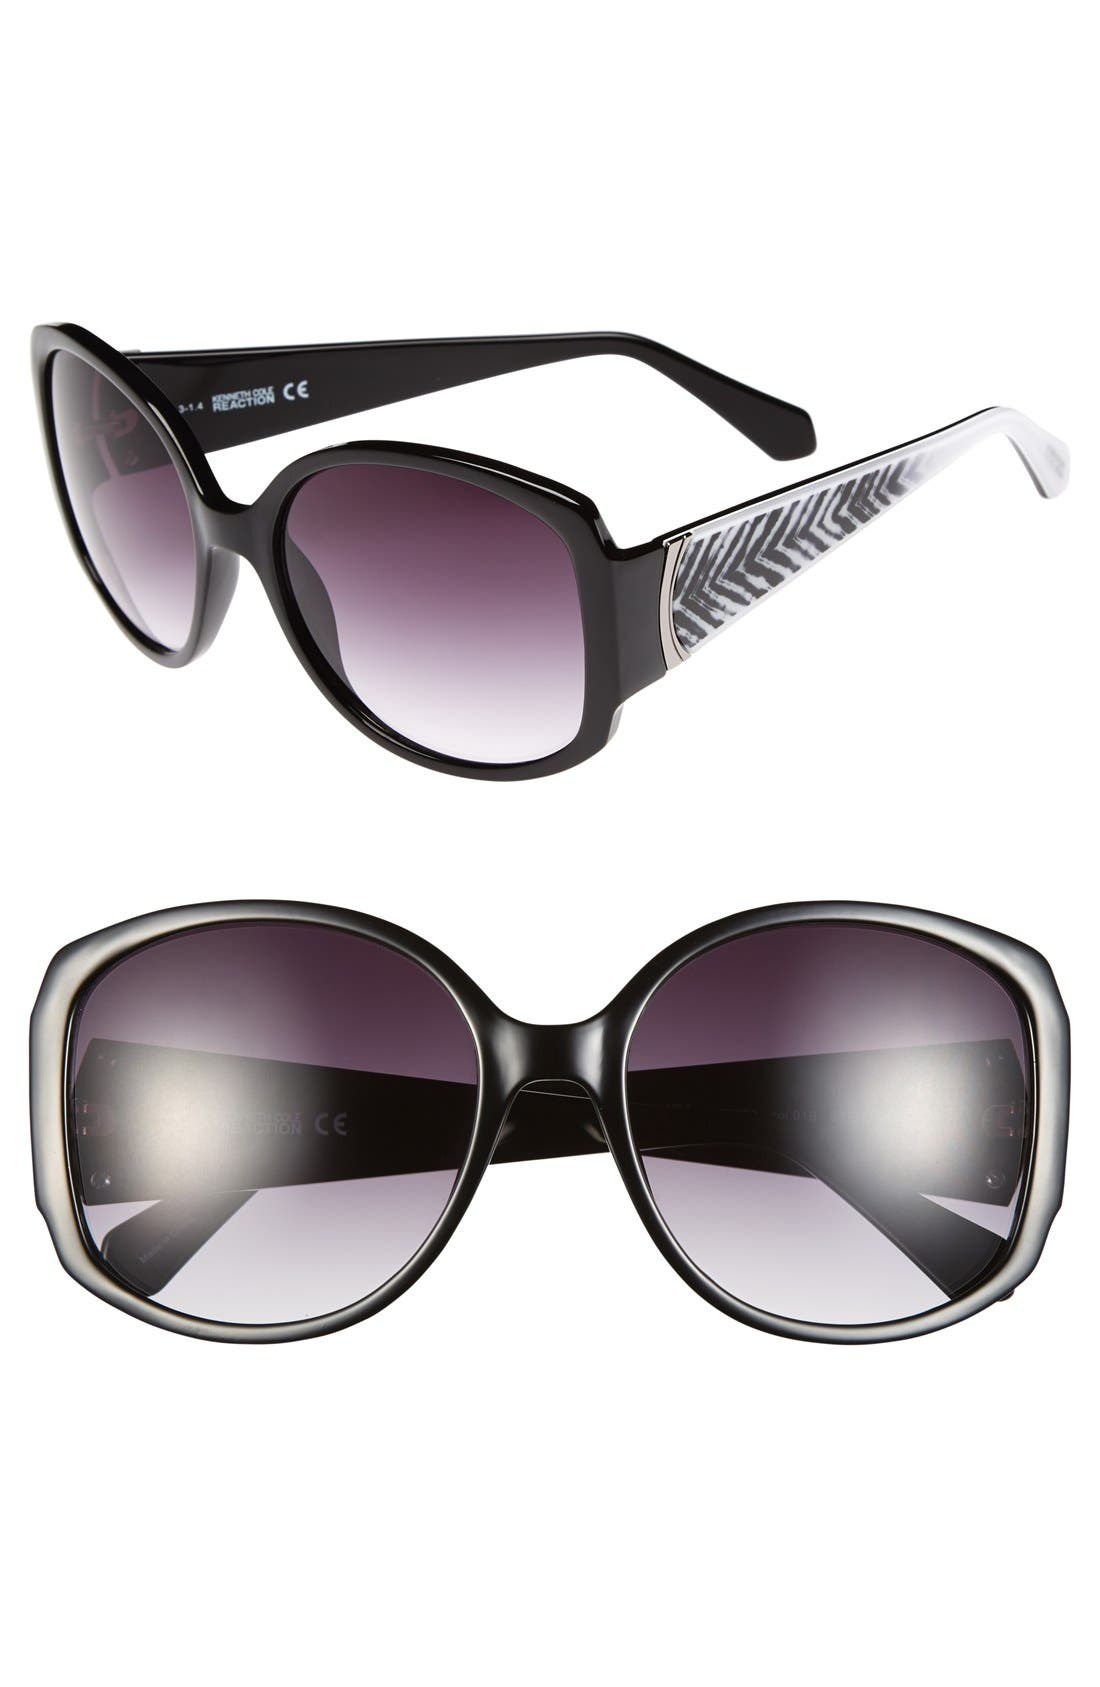 REACTION KENNETH COLE,                             Kenneth Cole Reaction 59mm Square Sunglasses,                             Main thumbnail 1, color,                             001